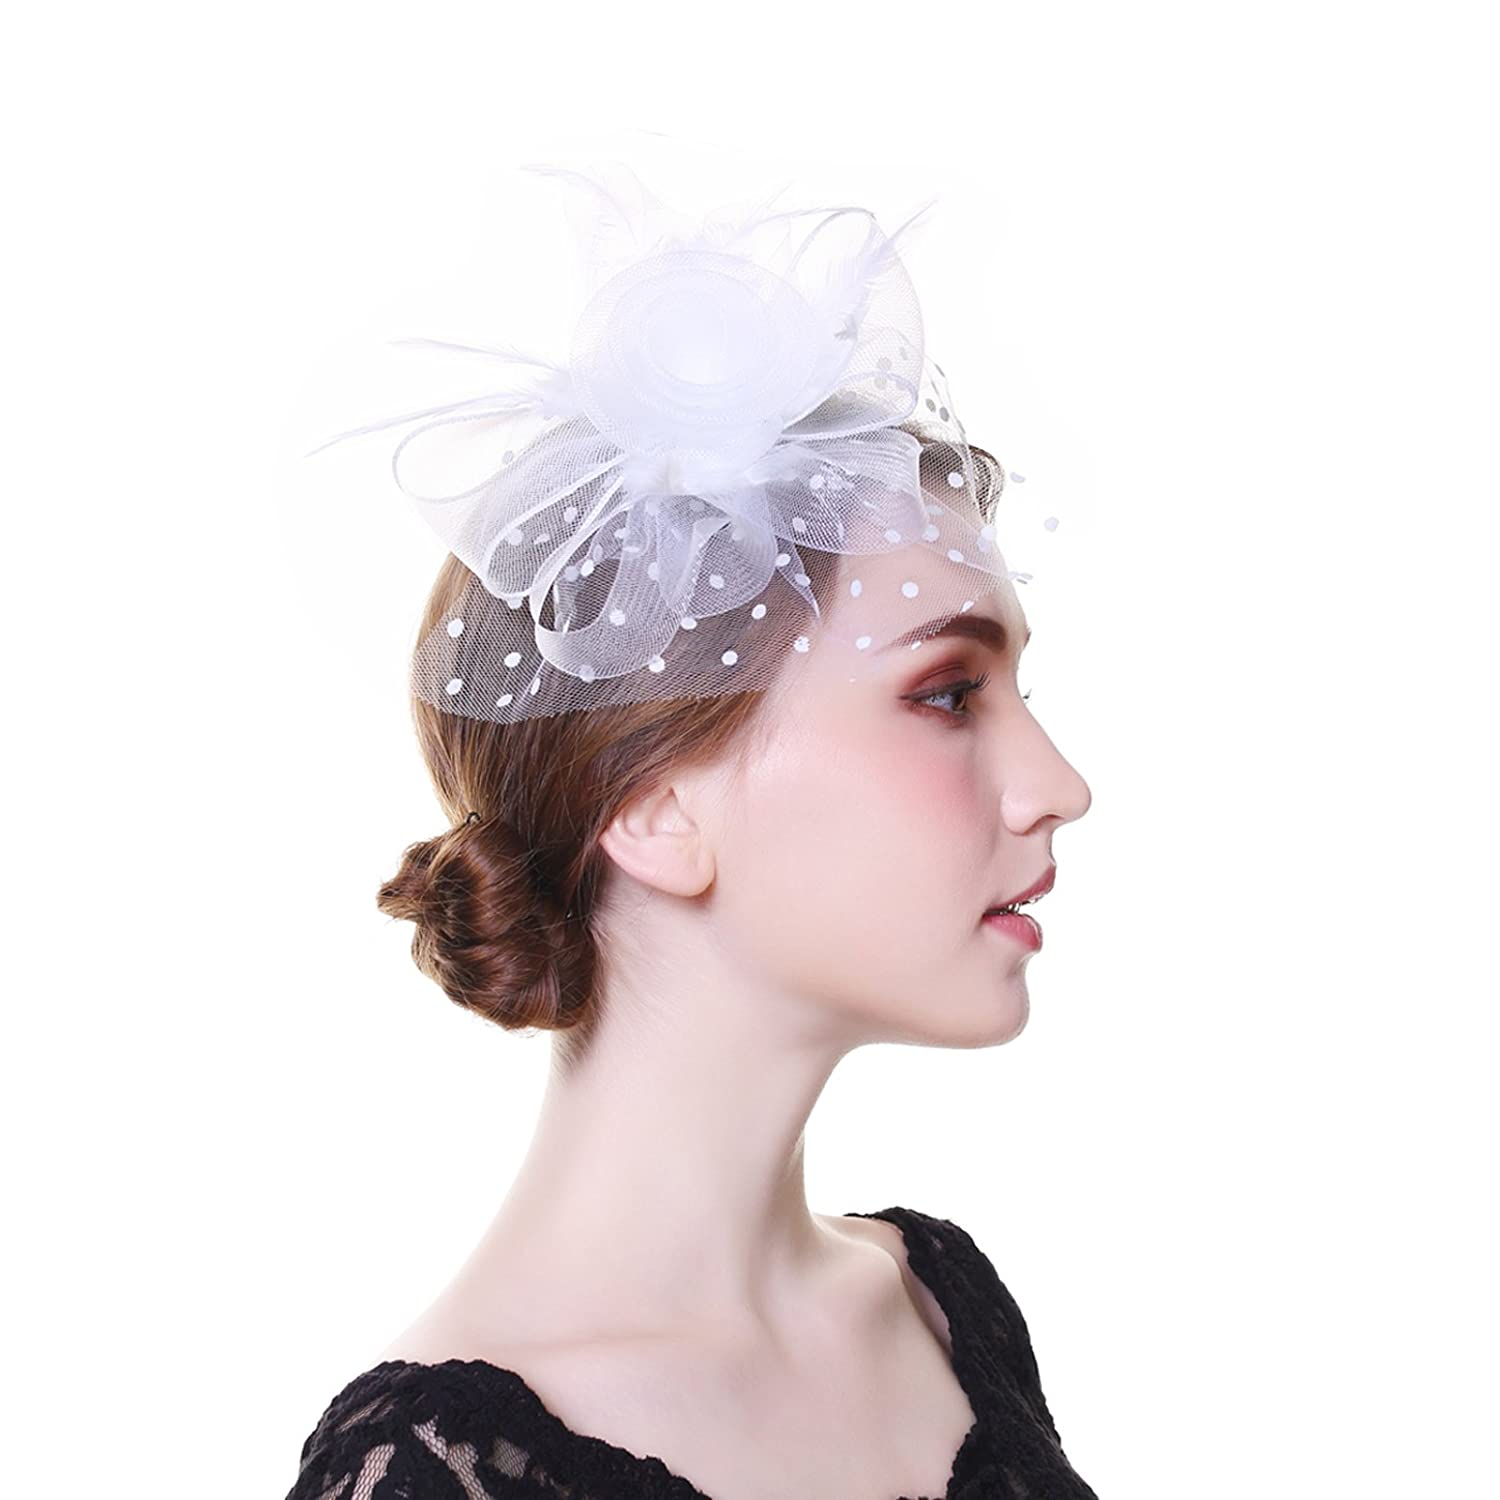 WELROG Women Fascinators Feather Mesh Hat Hair Clip Headwear Church Cap (Black)